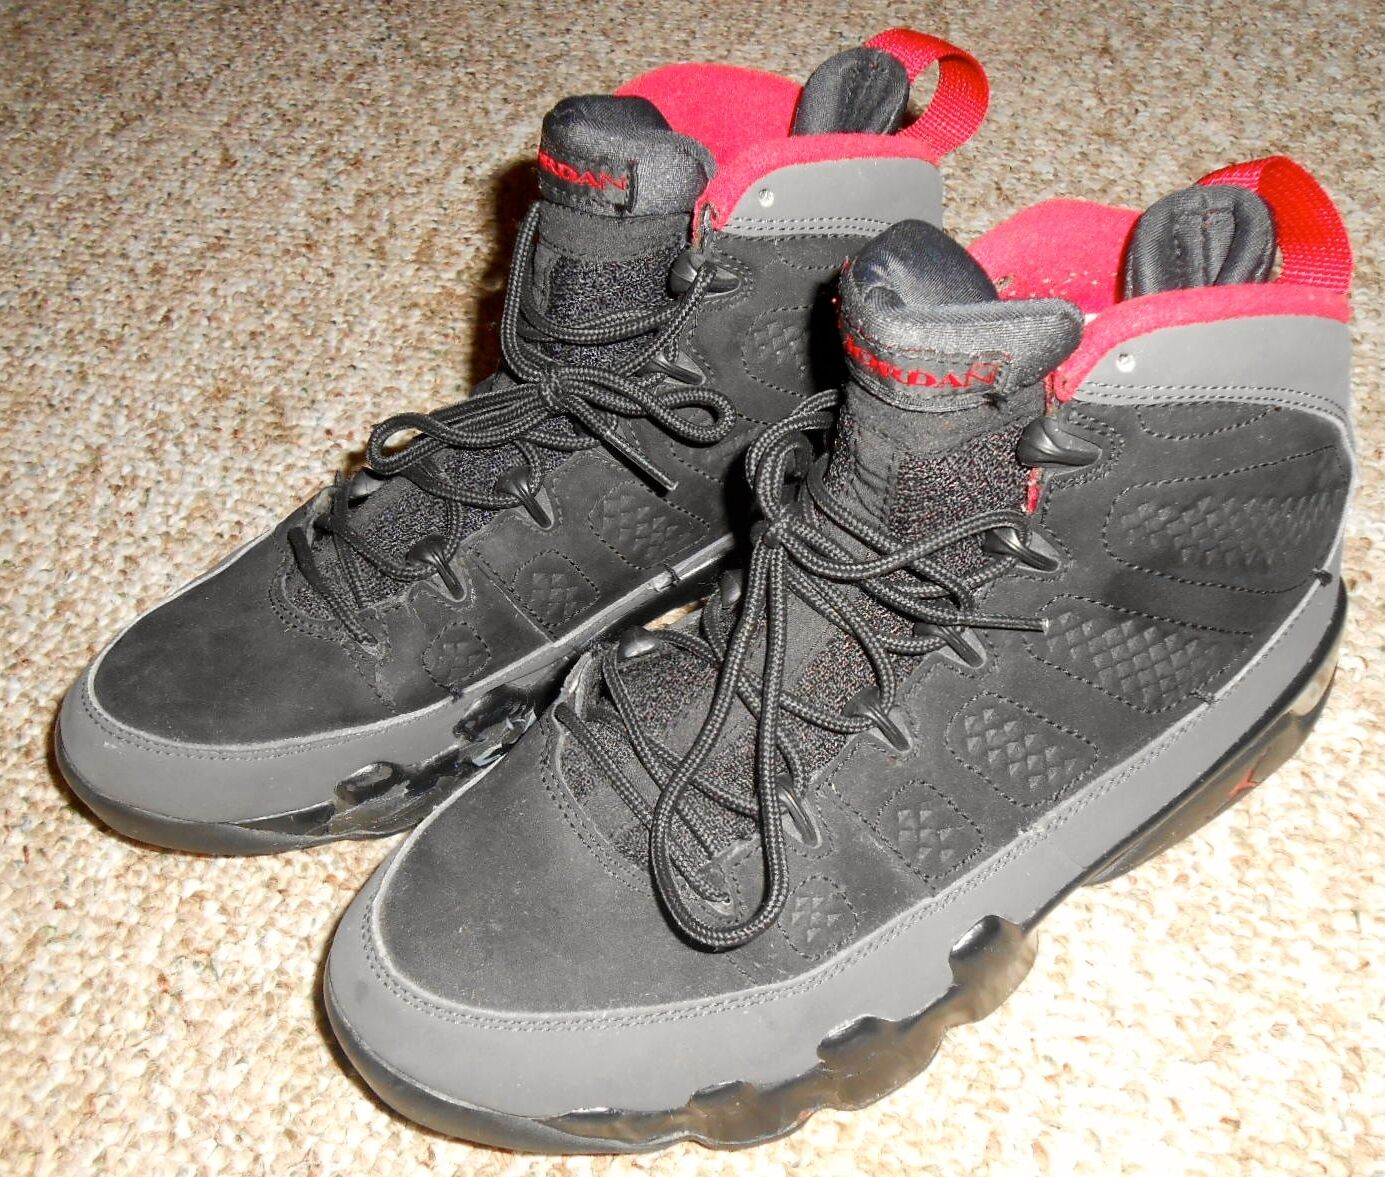 2010 Nike Air Jordan IX 9 Retro Black/ Red-Dark Charcoal 302370-005 Size 7.5